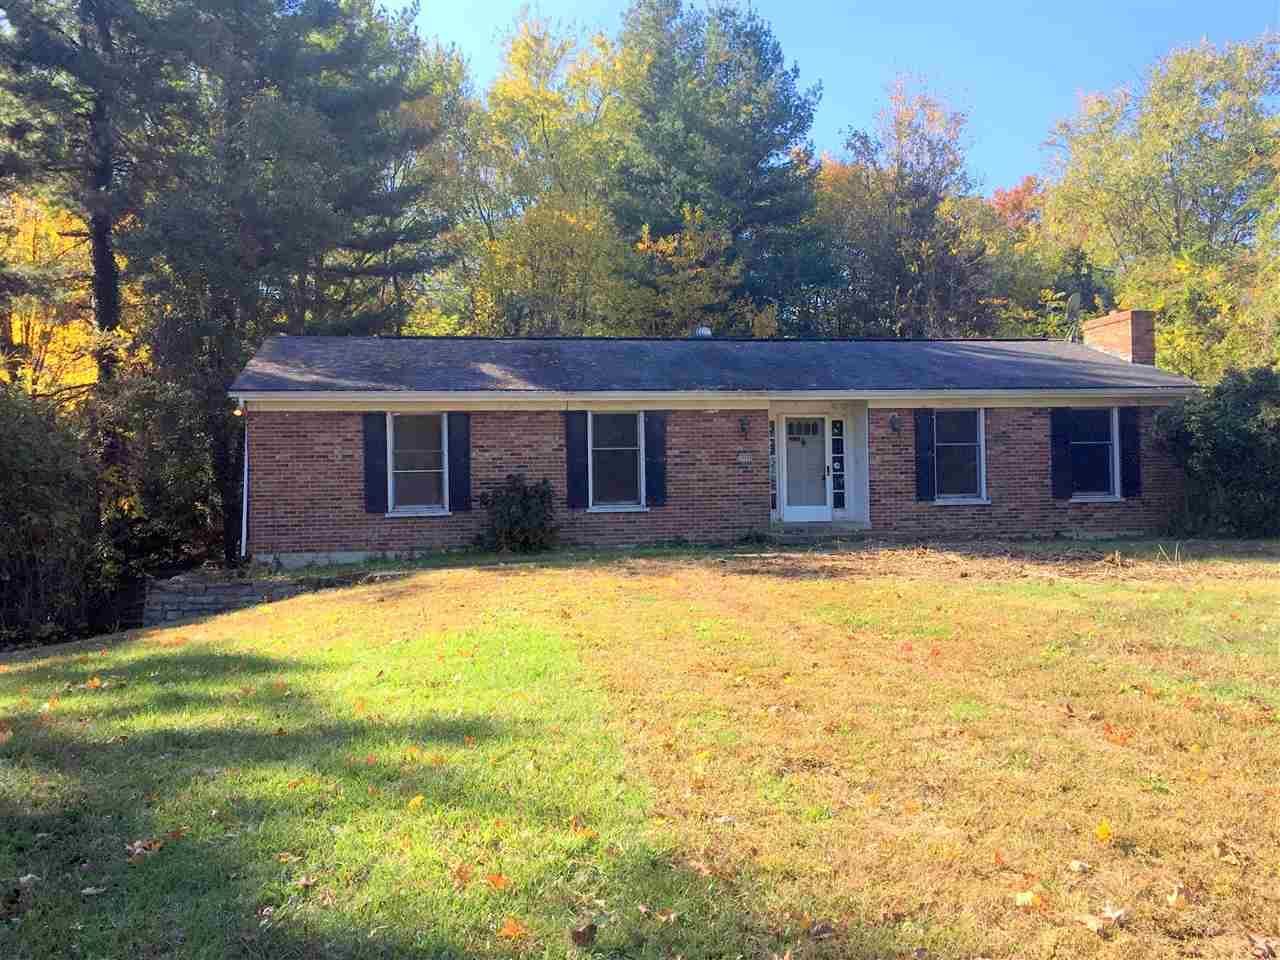 10049 Duncan, Florence, KY 41042 - #: 532651